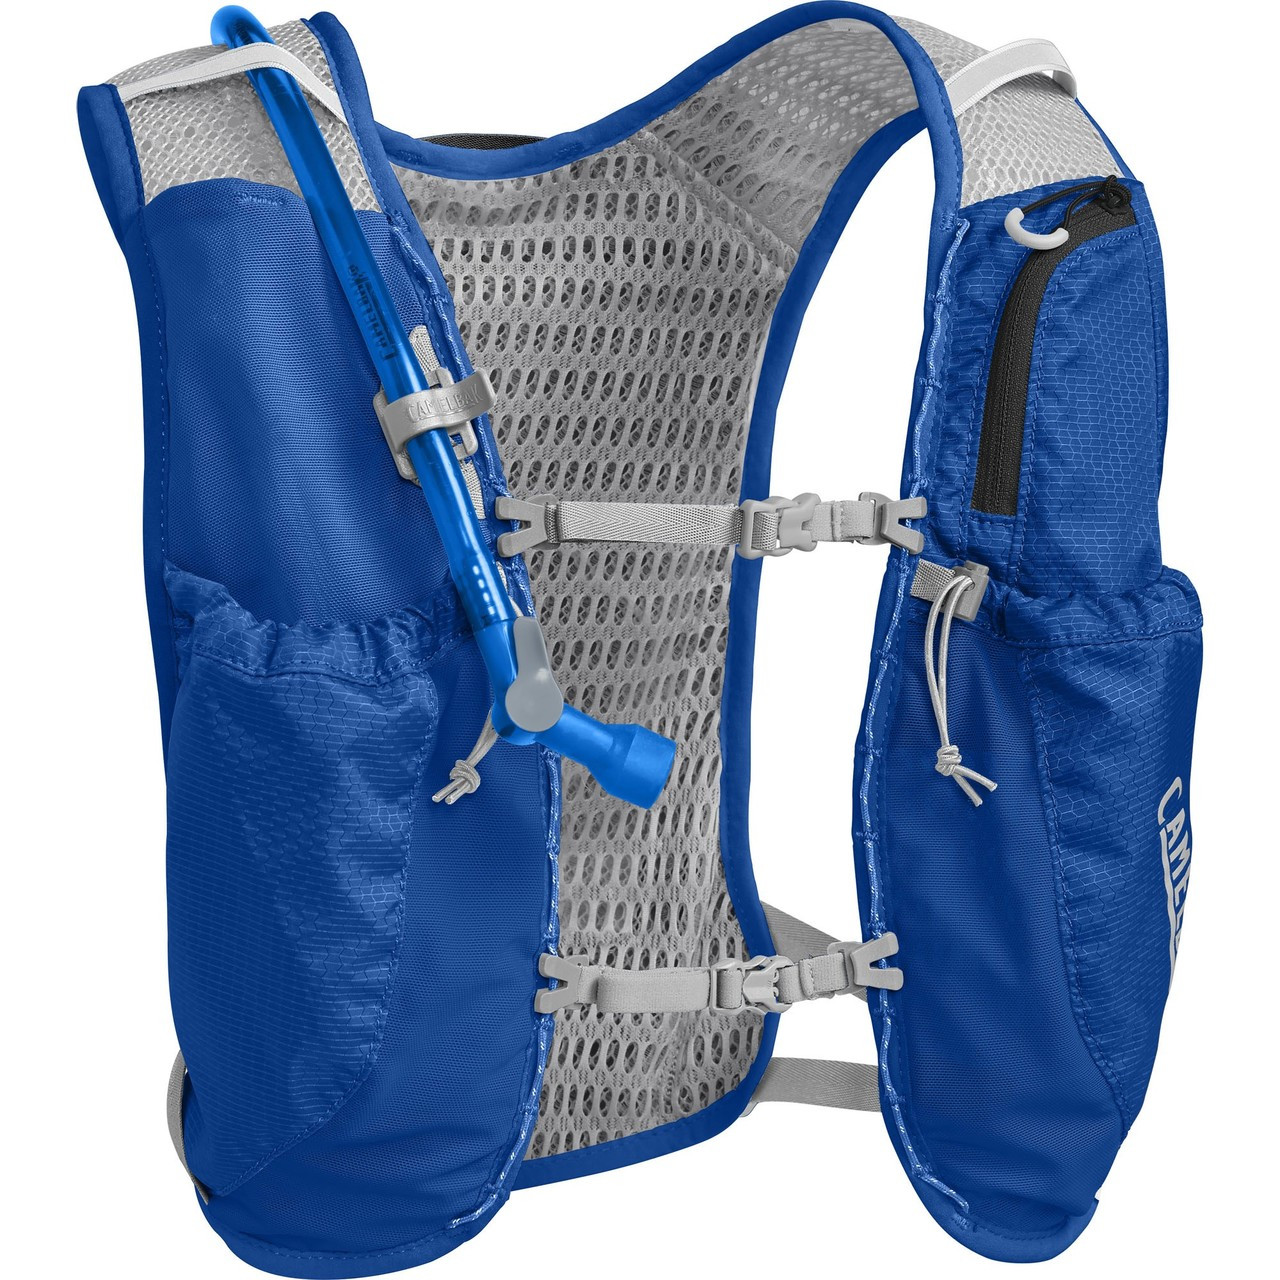 Camelbak Circuit Hydration Vest 50 oz. - 2019 price